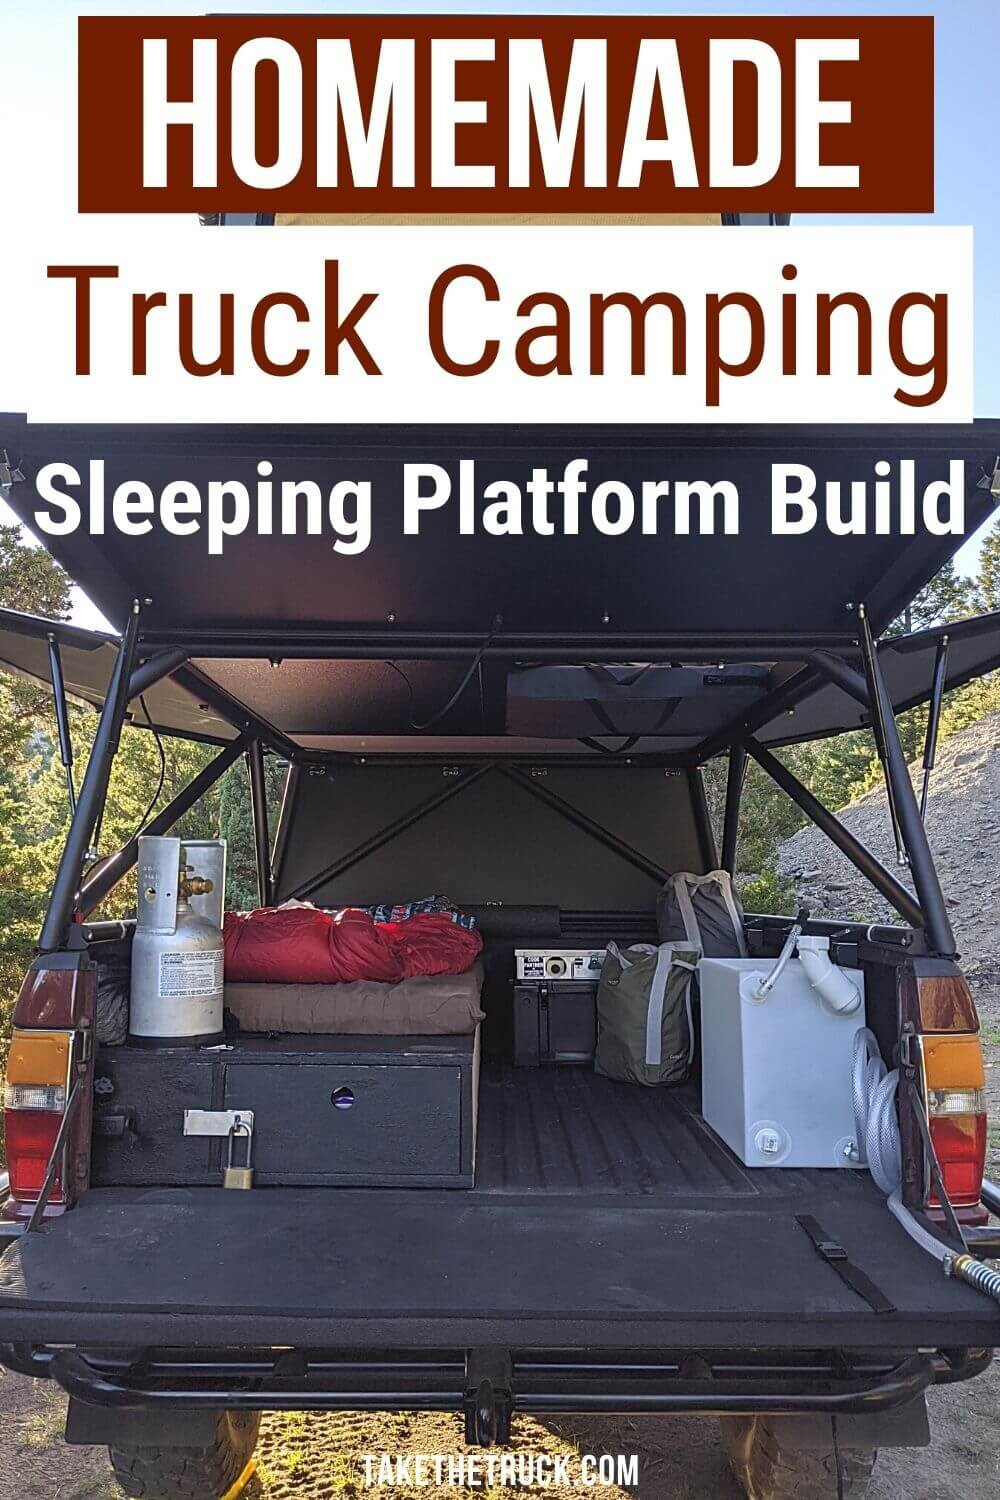 This post gives detailed truck bed camping platform plans and build instructions. The diy truck shell sleeping platform has a sliding truck drawer for more storage when you go camping in your pickup!